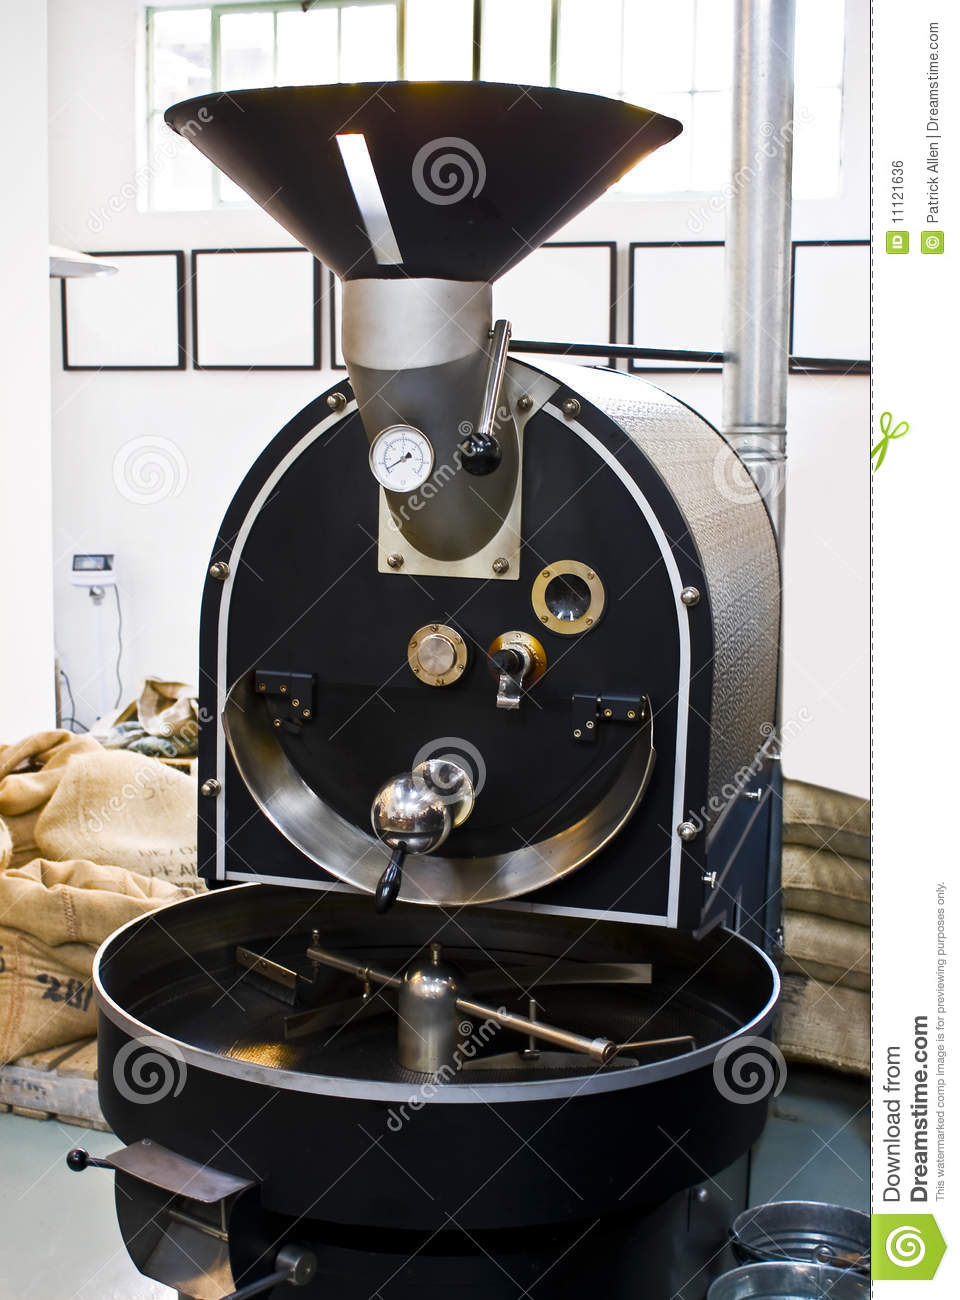 Commercial Coffee Drum Roaster Stock Photo - Image of